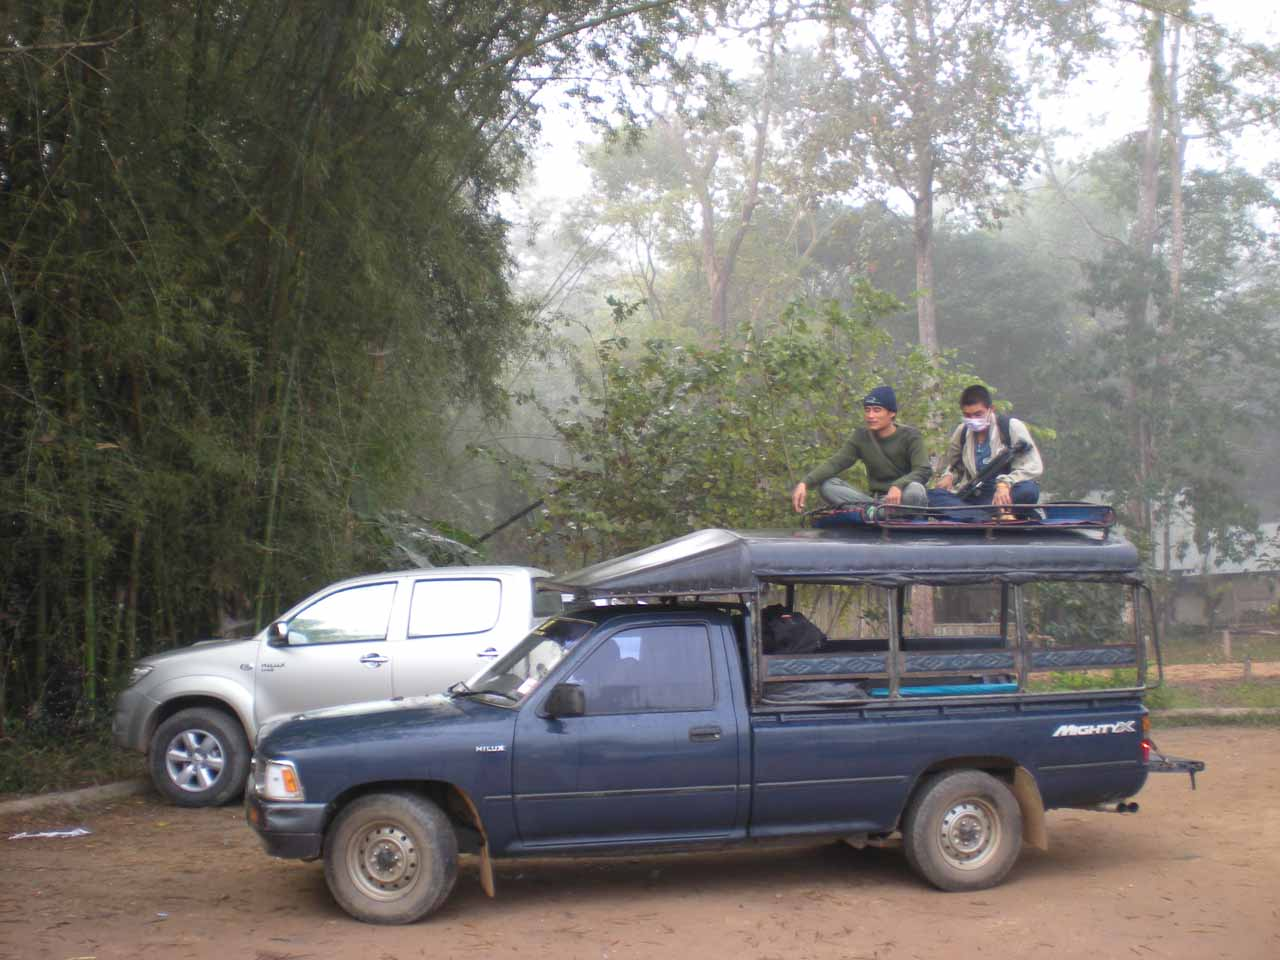 The songthaew that we had to ride in for the bumpy 4wd stretch of road leading us to the campground